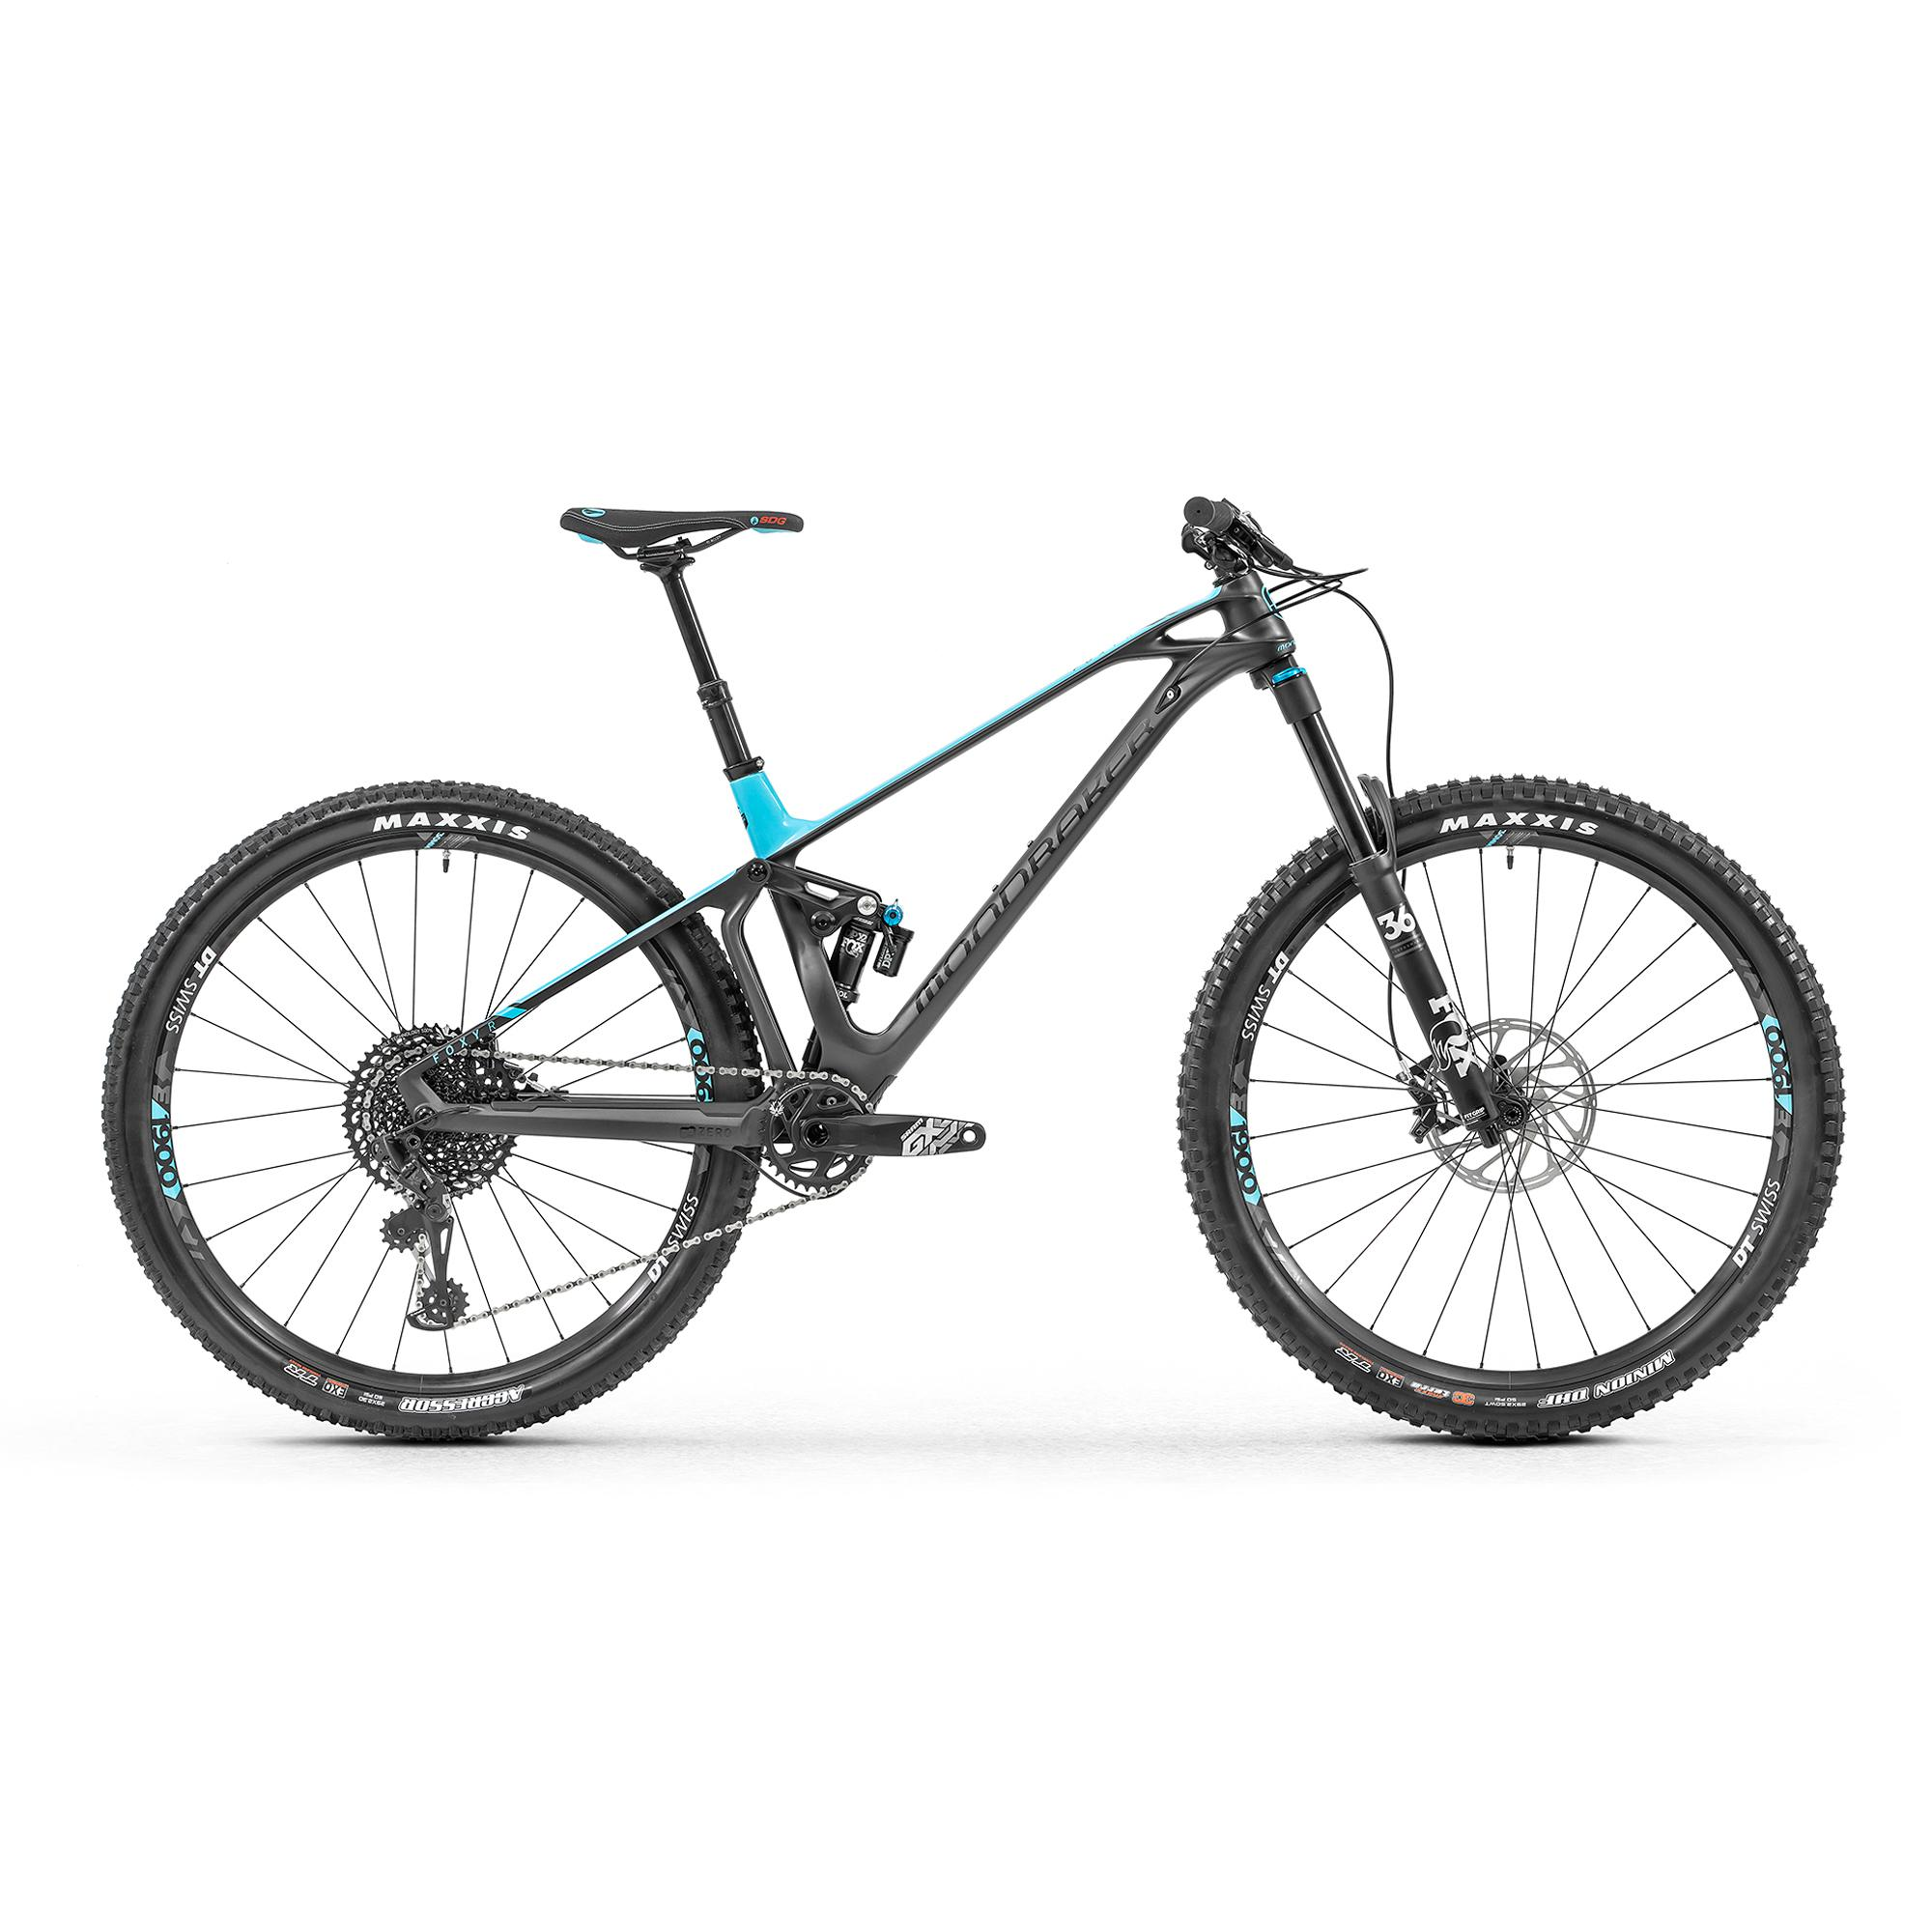 Description of the bicycle Stealth Aggressor and its characteristics